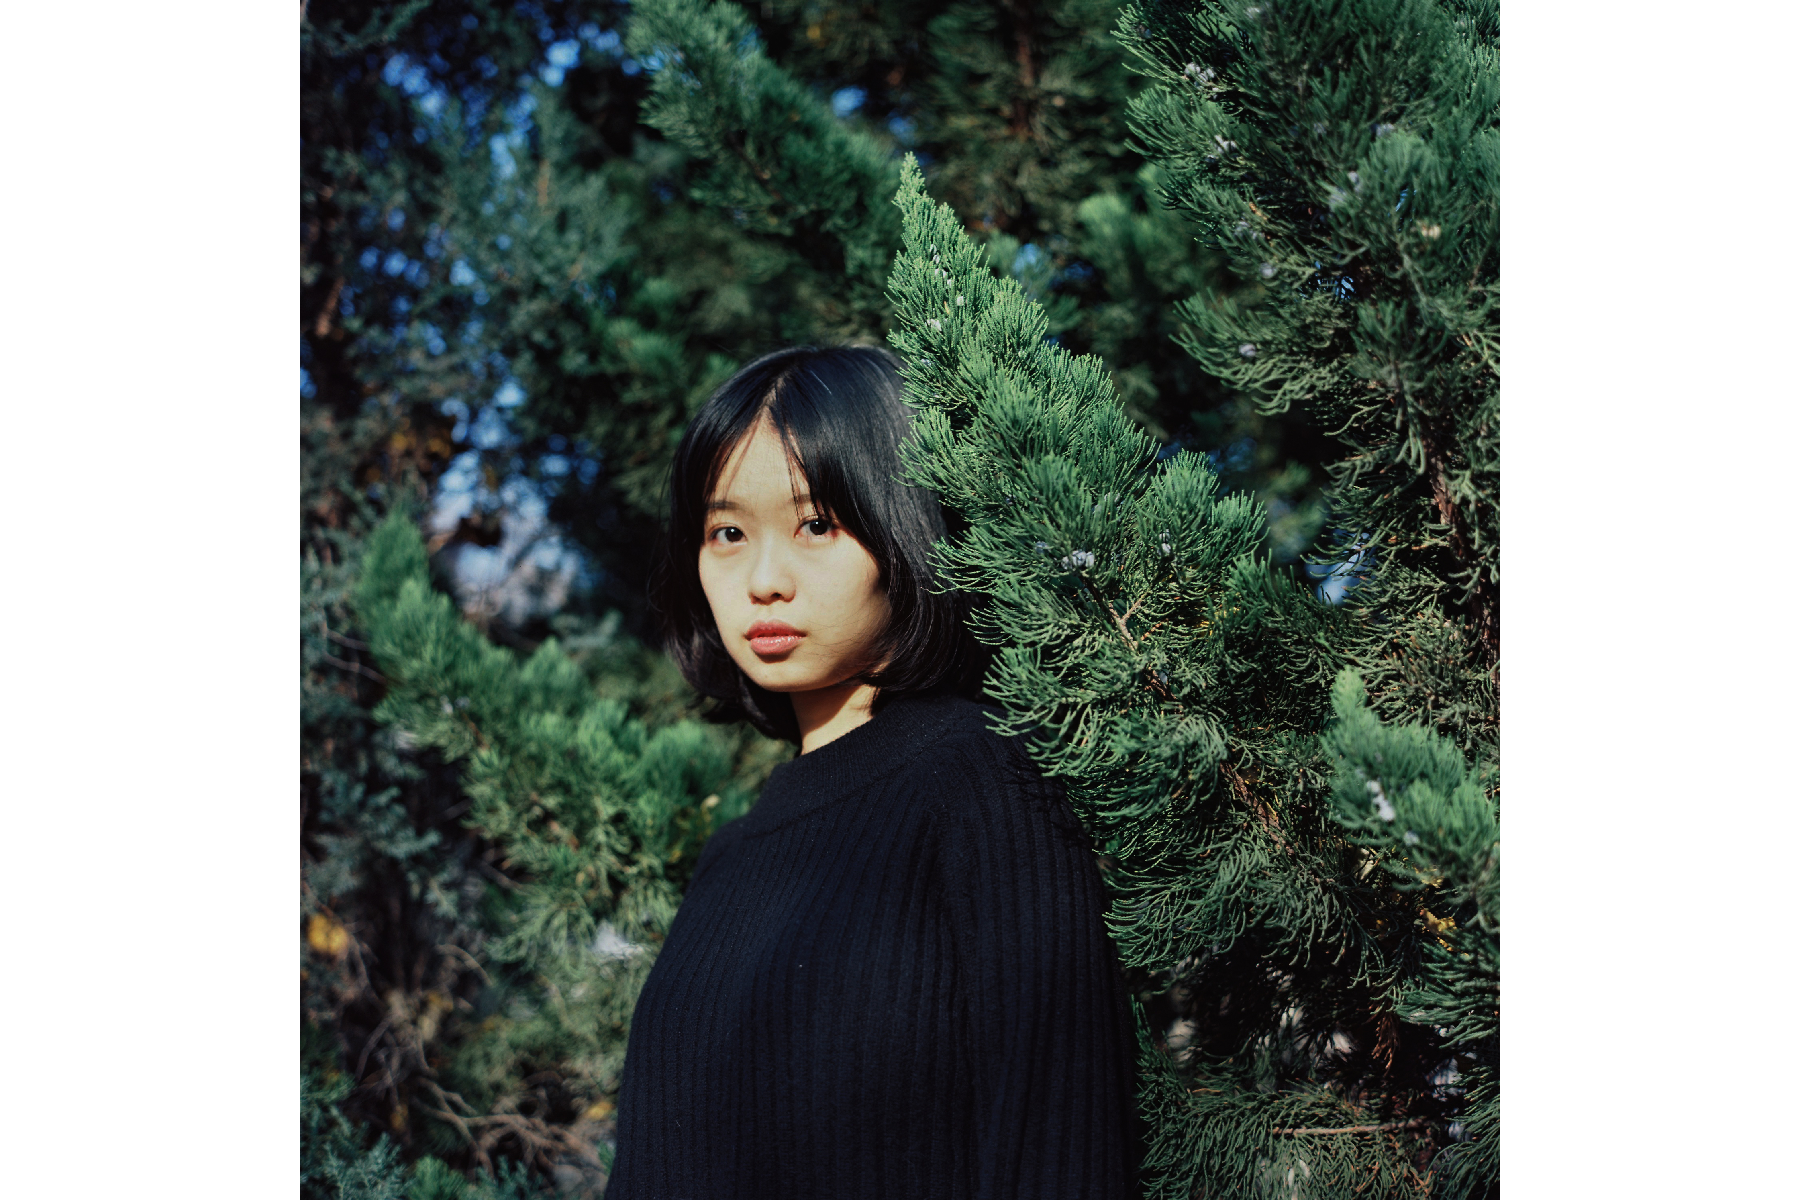 Xianzi, who accused a prominent TV host of sexual assault, poses for a portrait in Beijing, November 29. The TV host, Zhu Jun, is the highest-profile target of China's #MeToo movement. In July Xianzi, who uses only her nickname, recounted on her social media account how Zhu had groped and kissed her when she was an intern at his television station. The post went viral, Zhu sued her for defamation and Xianzi then filed suit against Zhu for infringement of personal dignity. (Du Yang for the Financial Times)